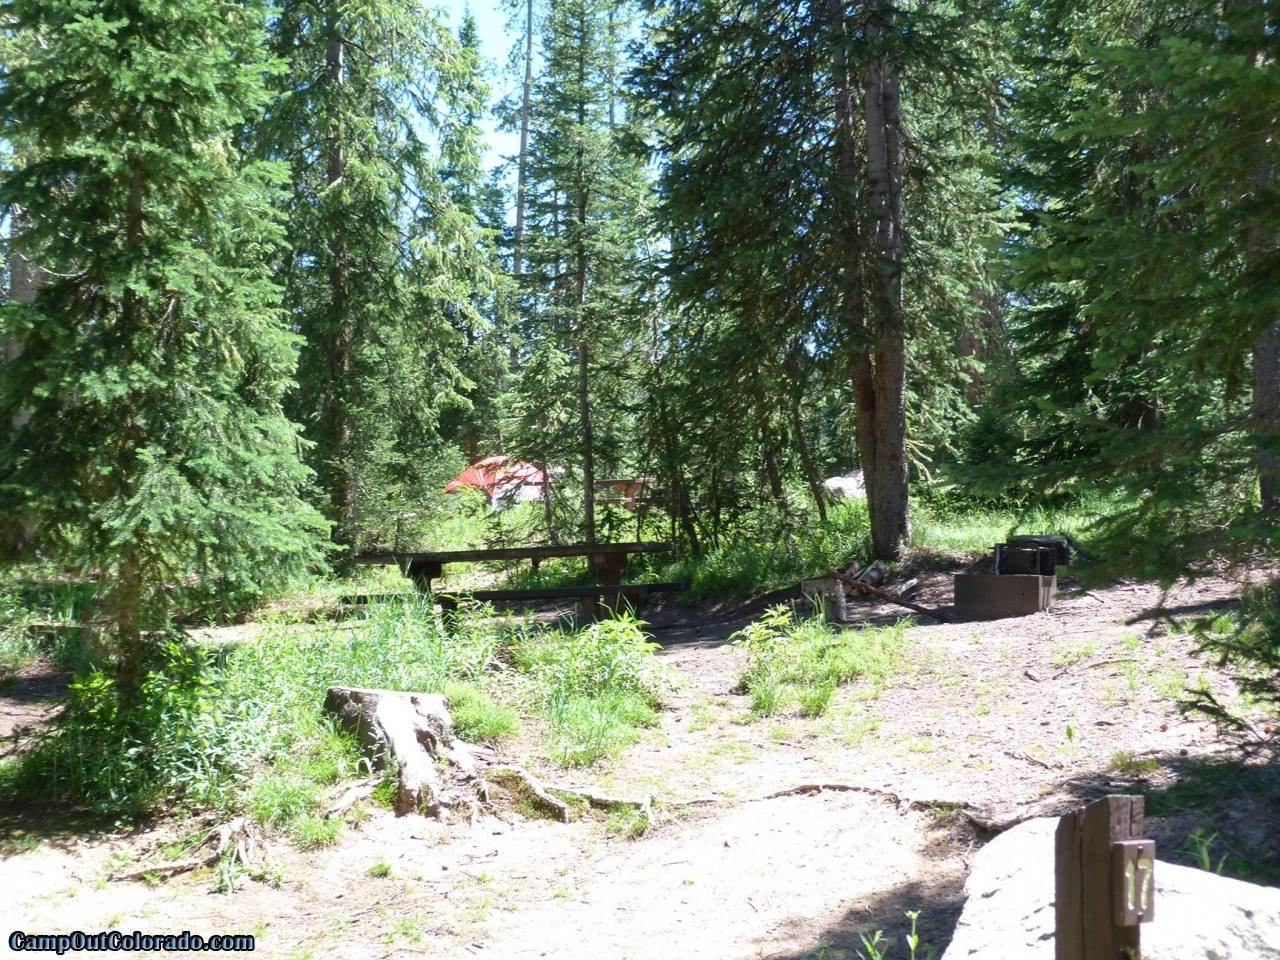 campoutcolorado-meadows-campground-rabbit-ears-thick-trees